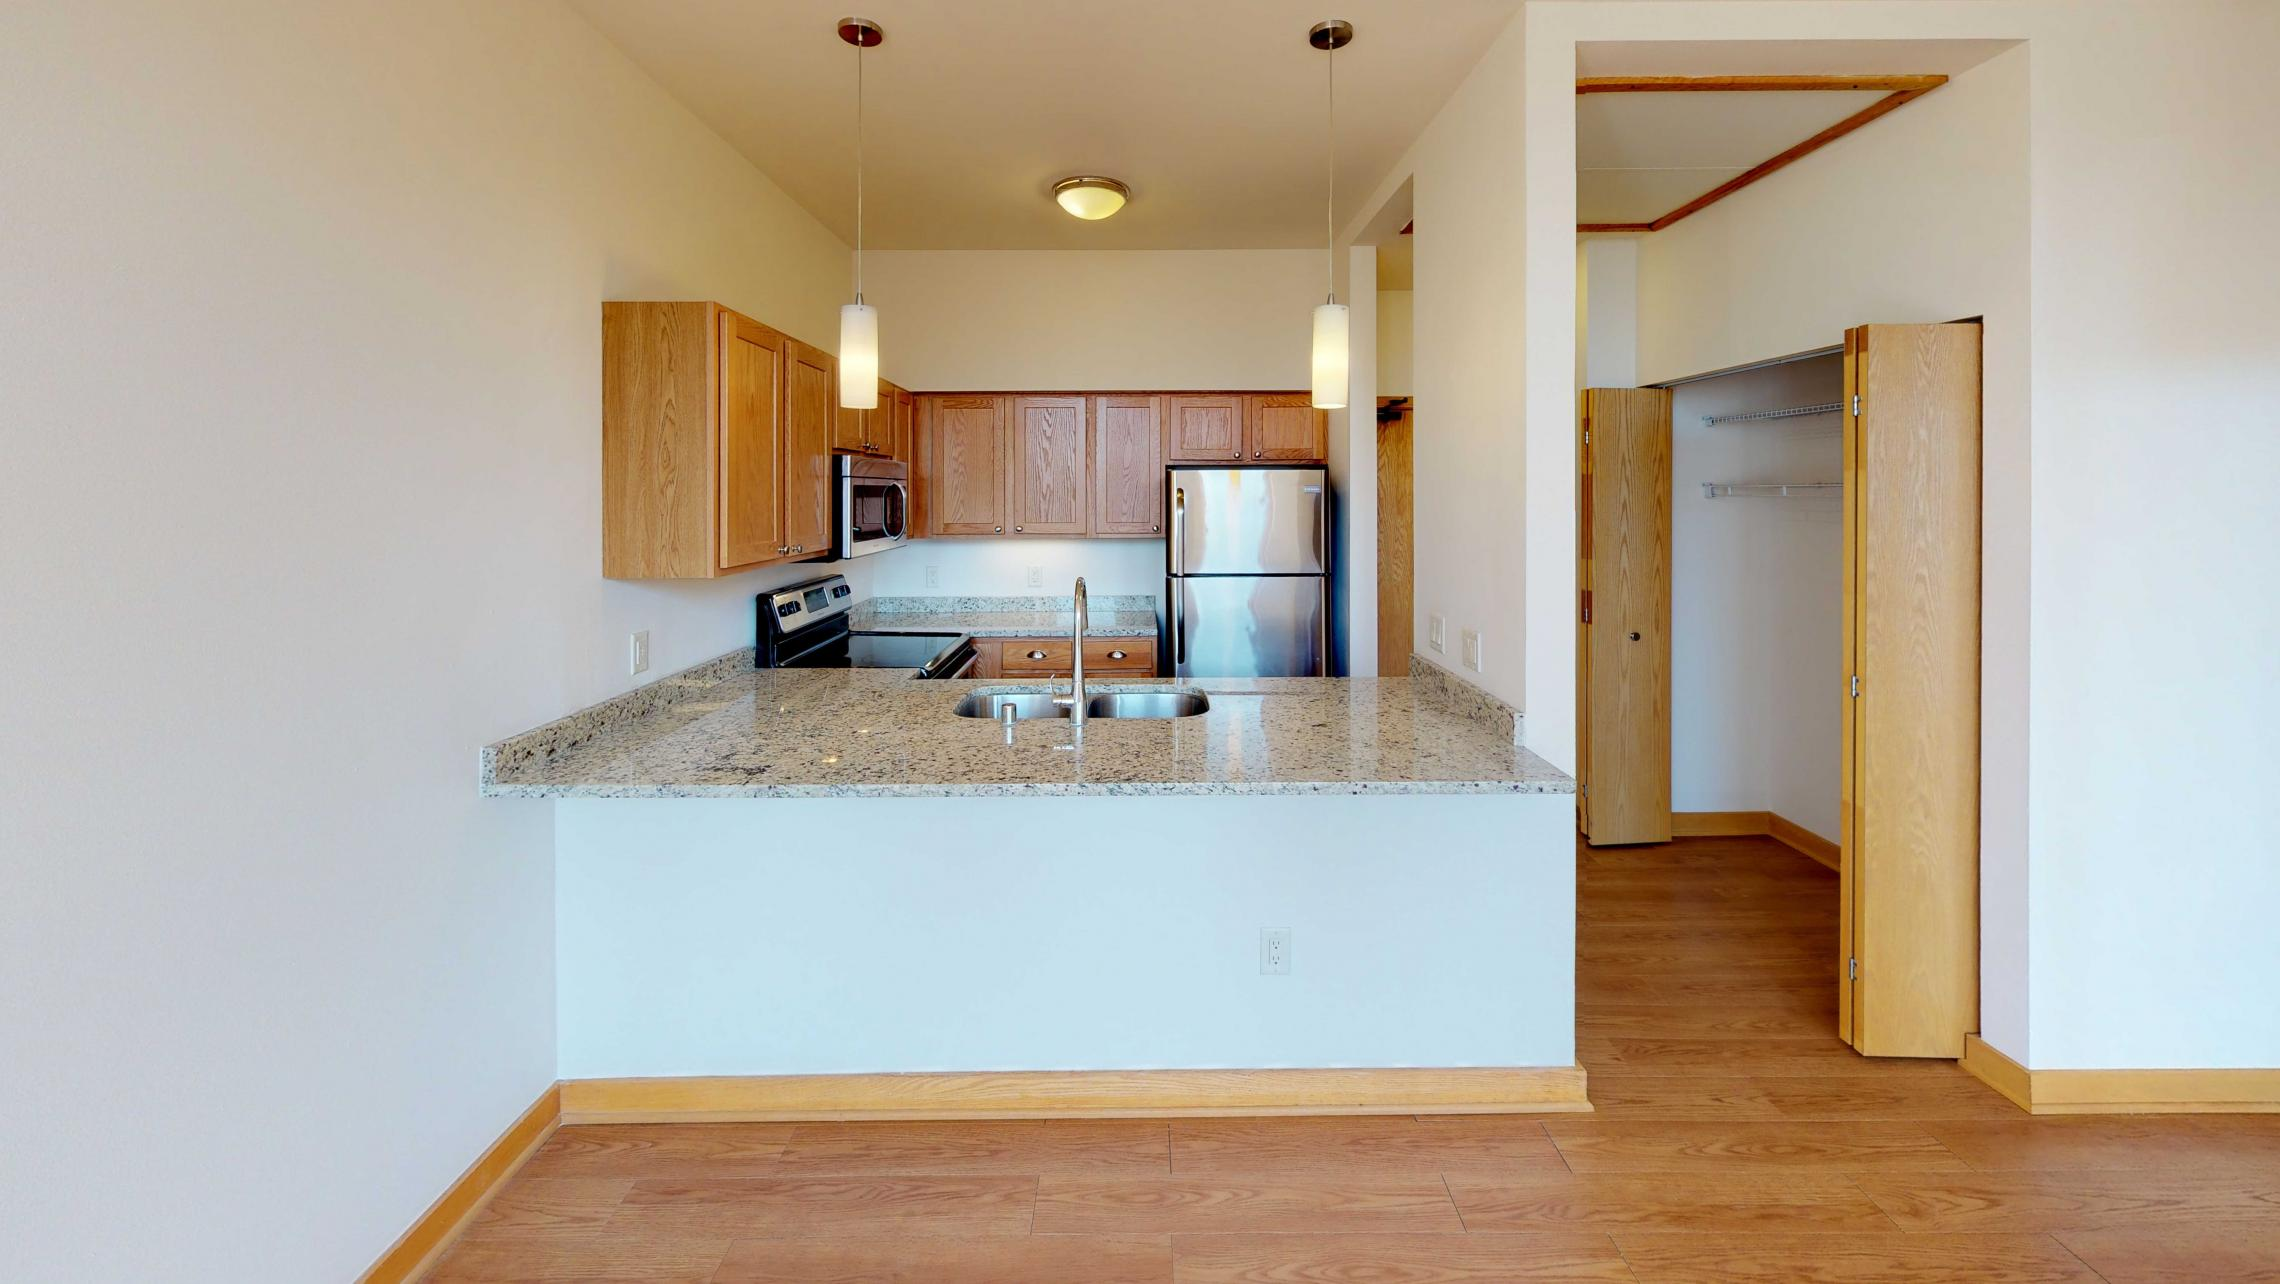 ULI-Lincoln-School-Apartment-406-One-Bedroom-Living-Area-Kitchen-Historic-Apartment-Downtown-View-Pet-Friendly-Dogs-Cats-Level-Home-Trails-Parks